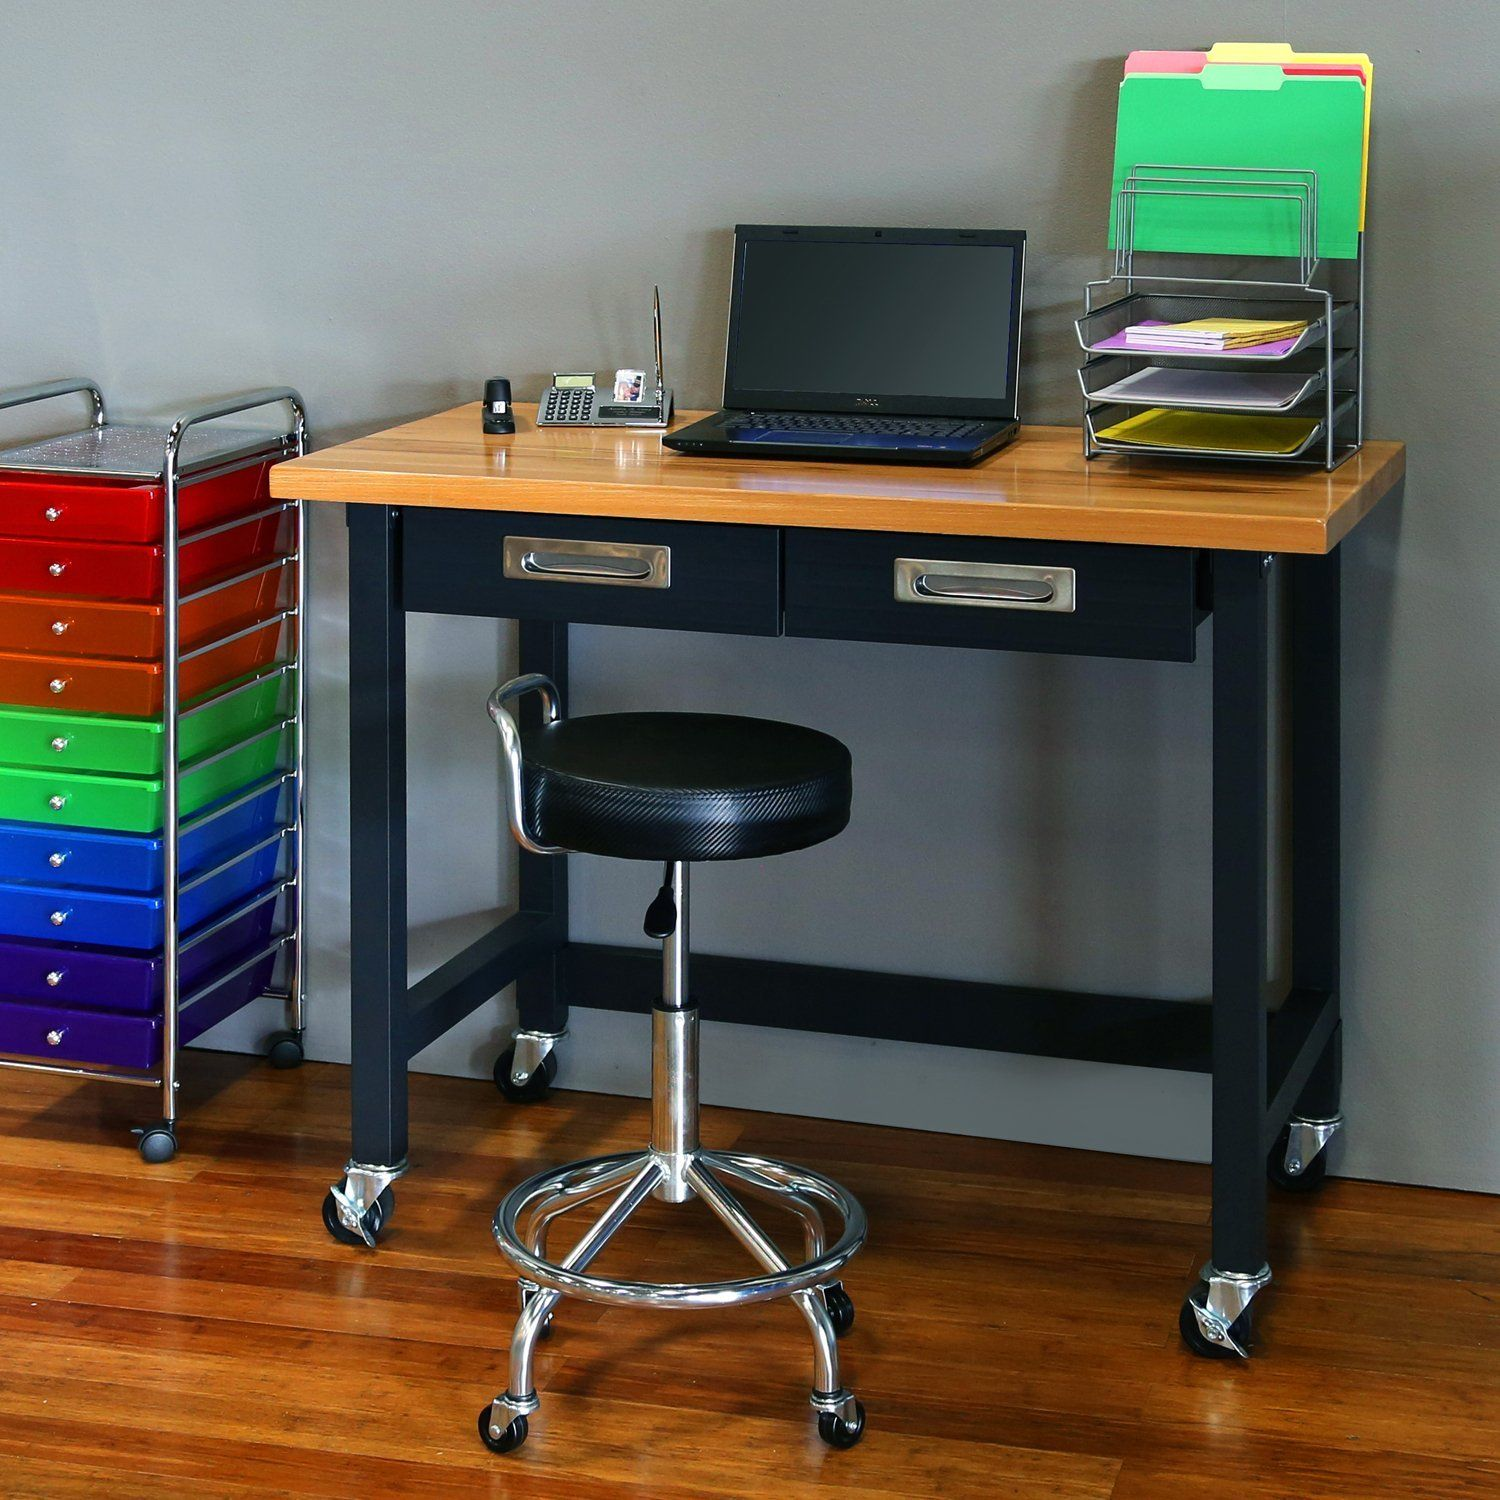 Build a rolling workbench with easy to follow DIY plans